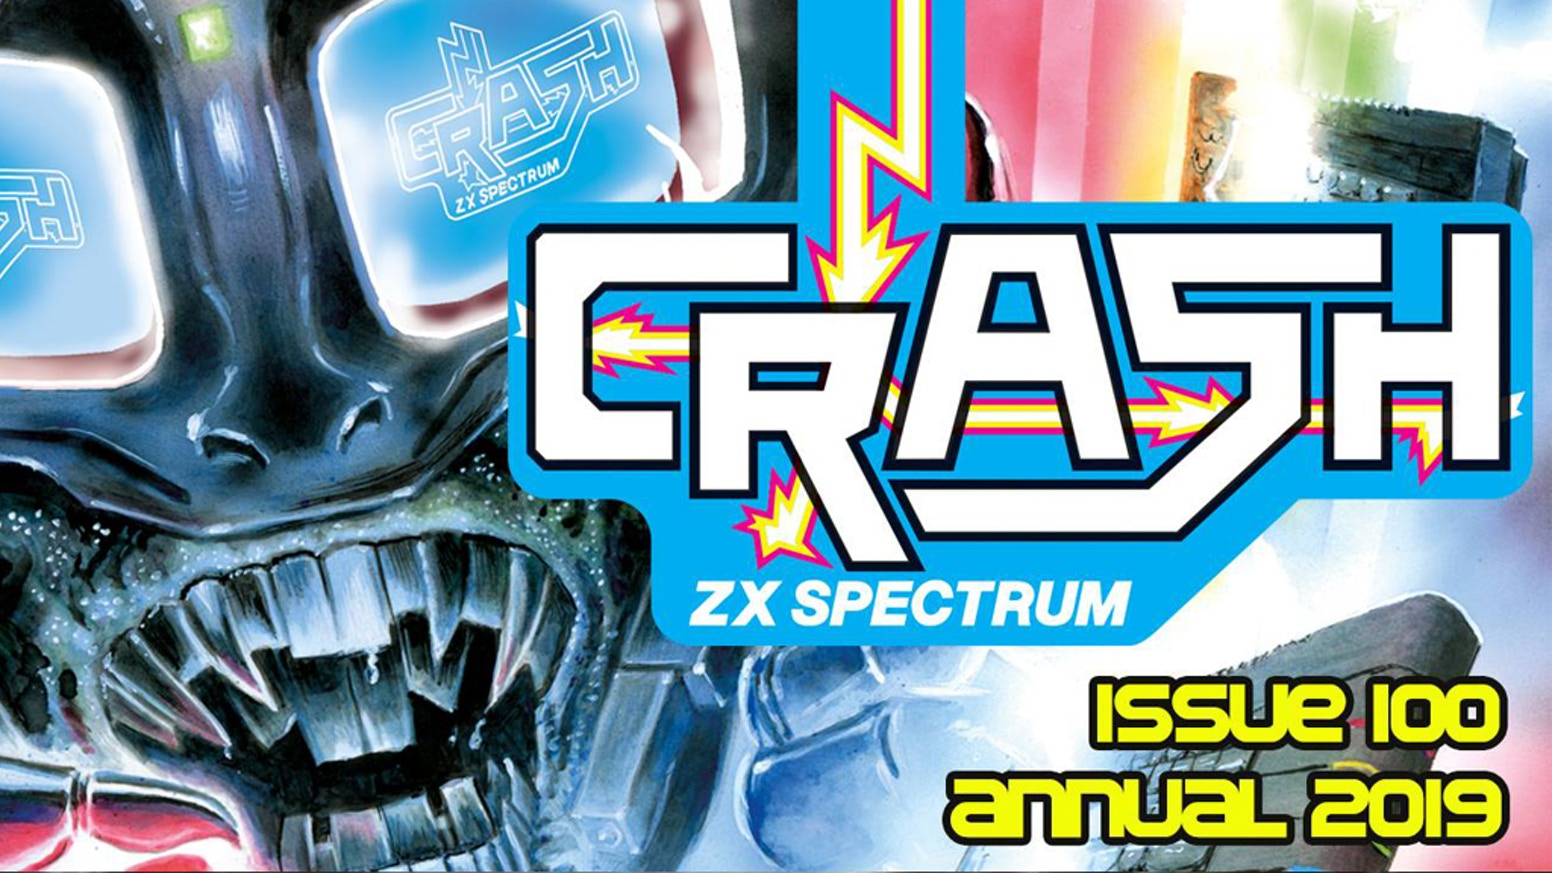 Issue 100 of the mighty Crash magazine for the ZX Spectrum  - Happy Birthday Crash!